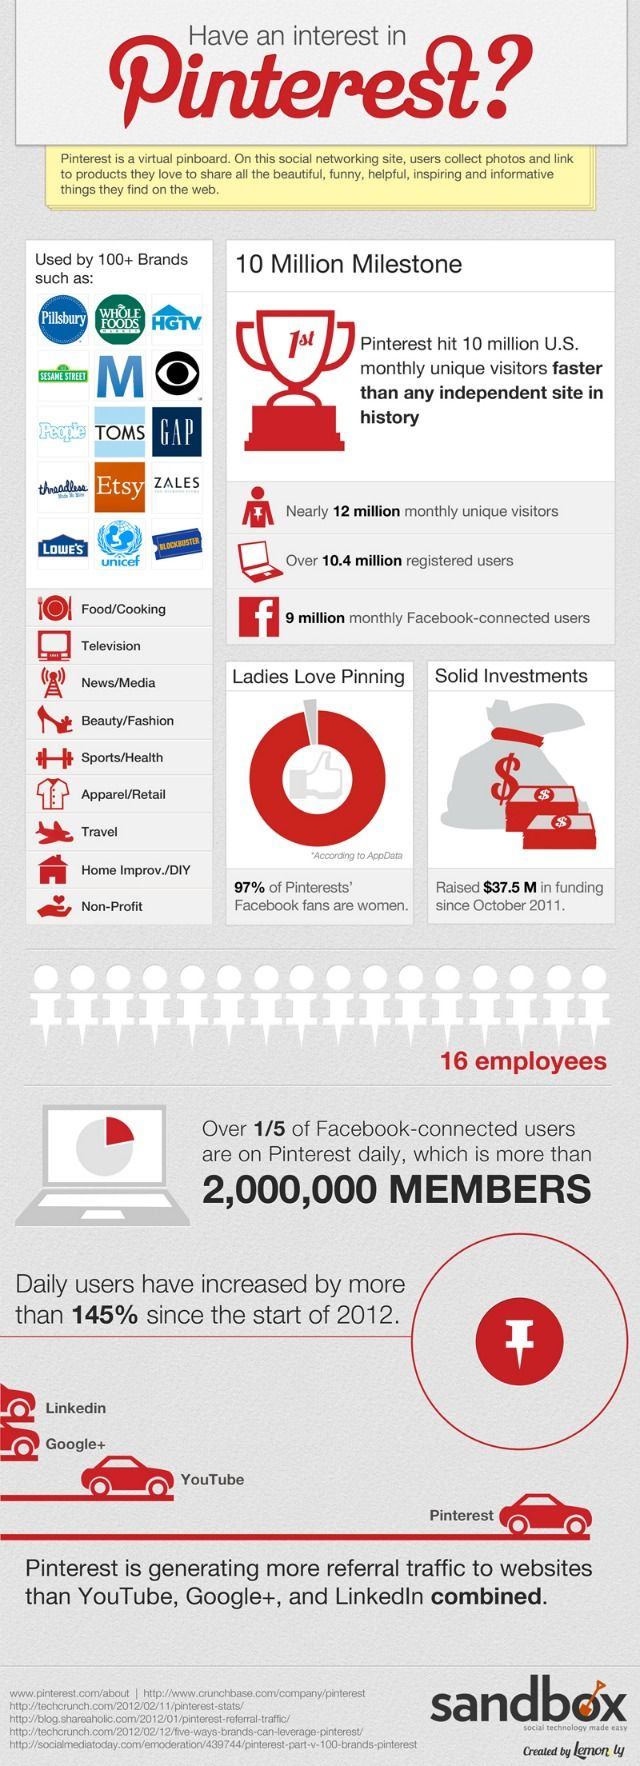 Pinterest: Everything You Wanted to Know About 2012′s Hottest Startup #infographic #mashable